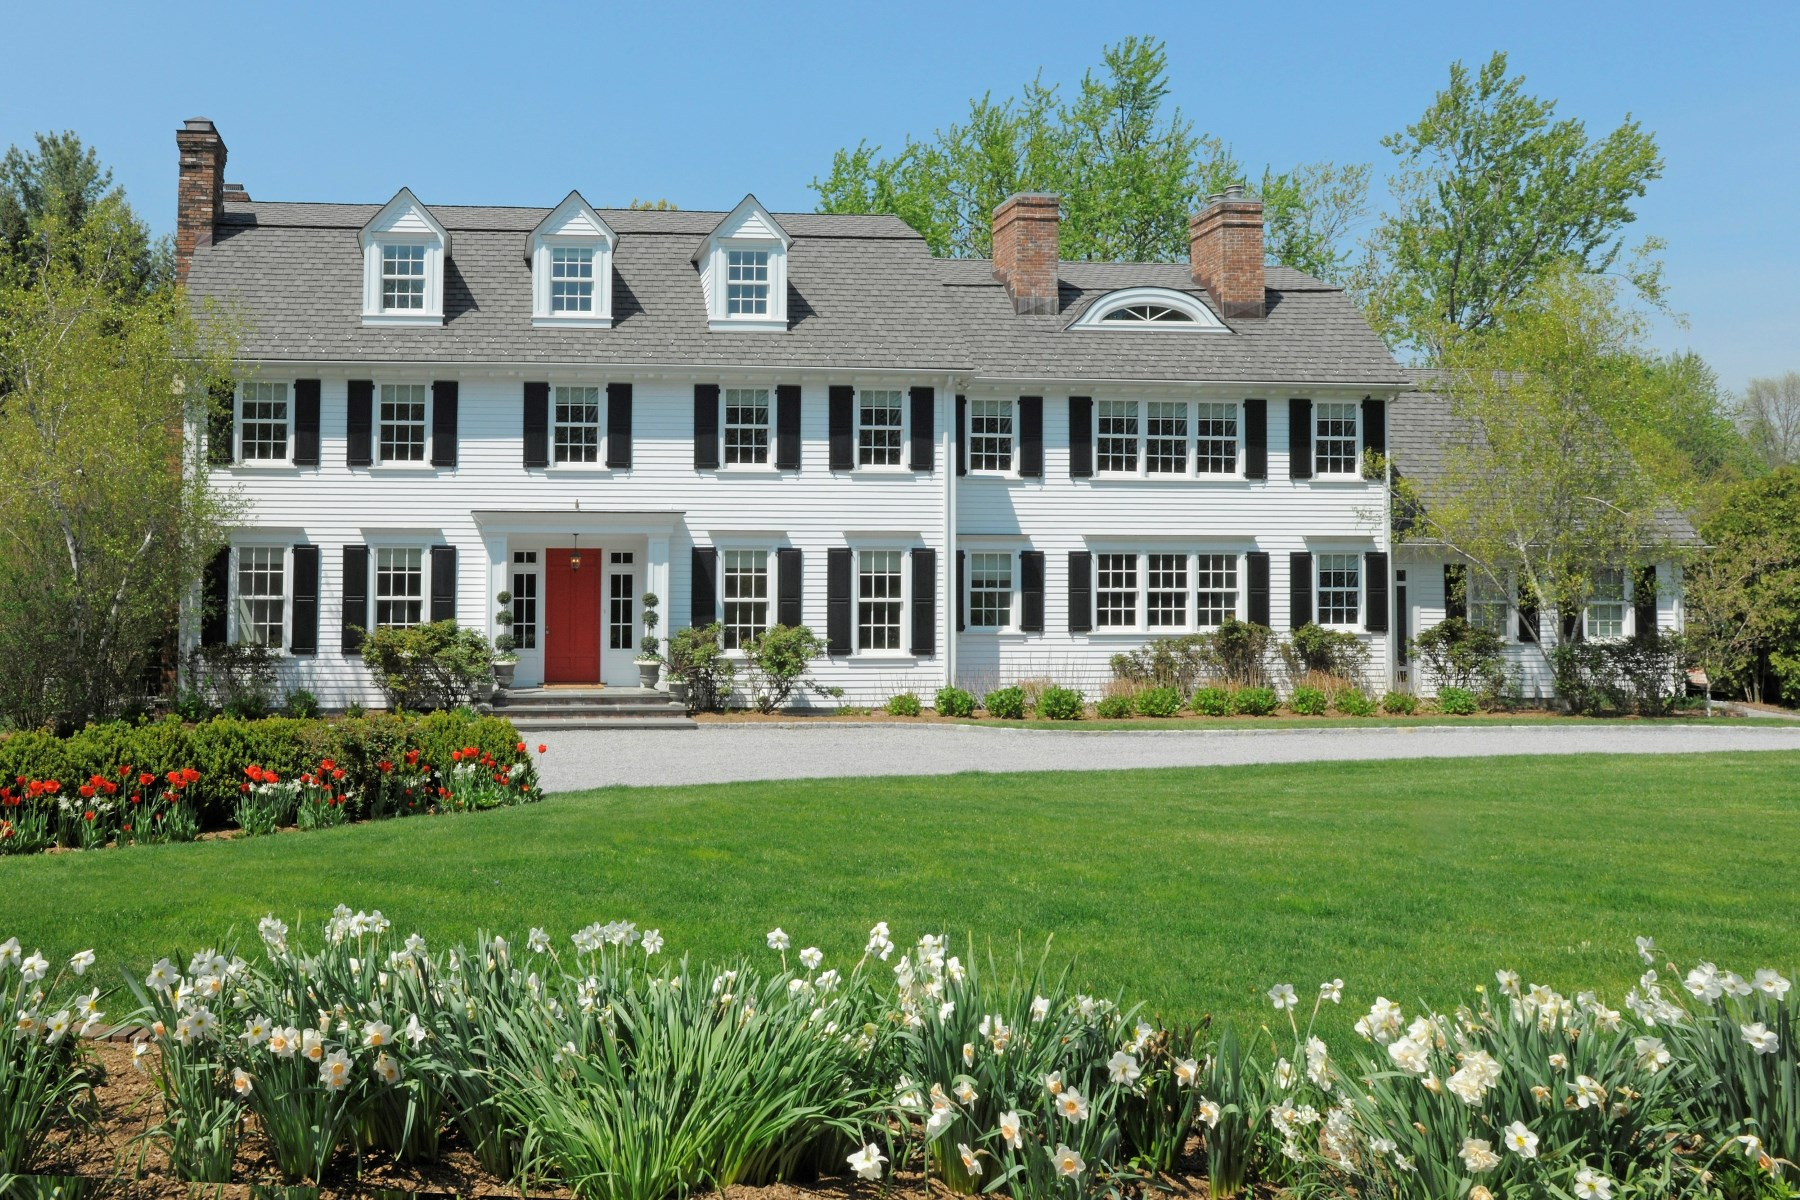 Single Family Home for Sale at Beauty in Belle Haven 3 Meadow Wood Drive Greenwich, Connecticut 06830 United States